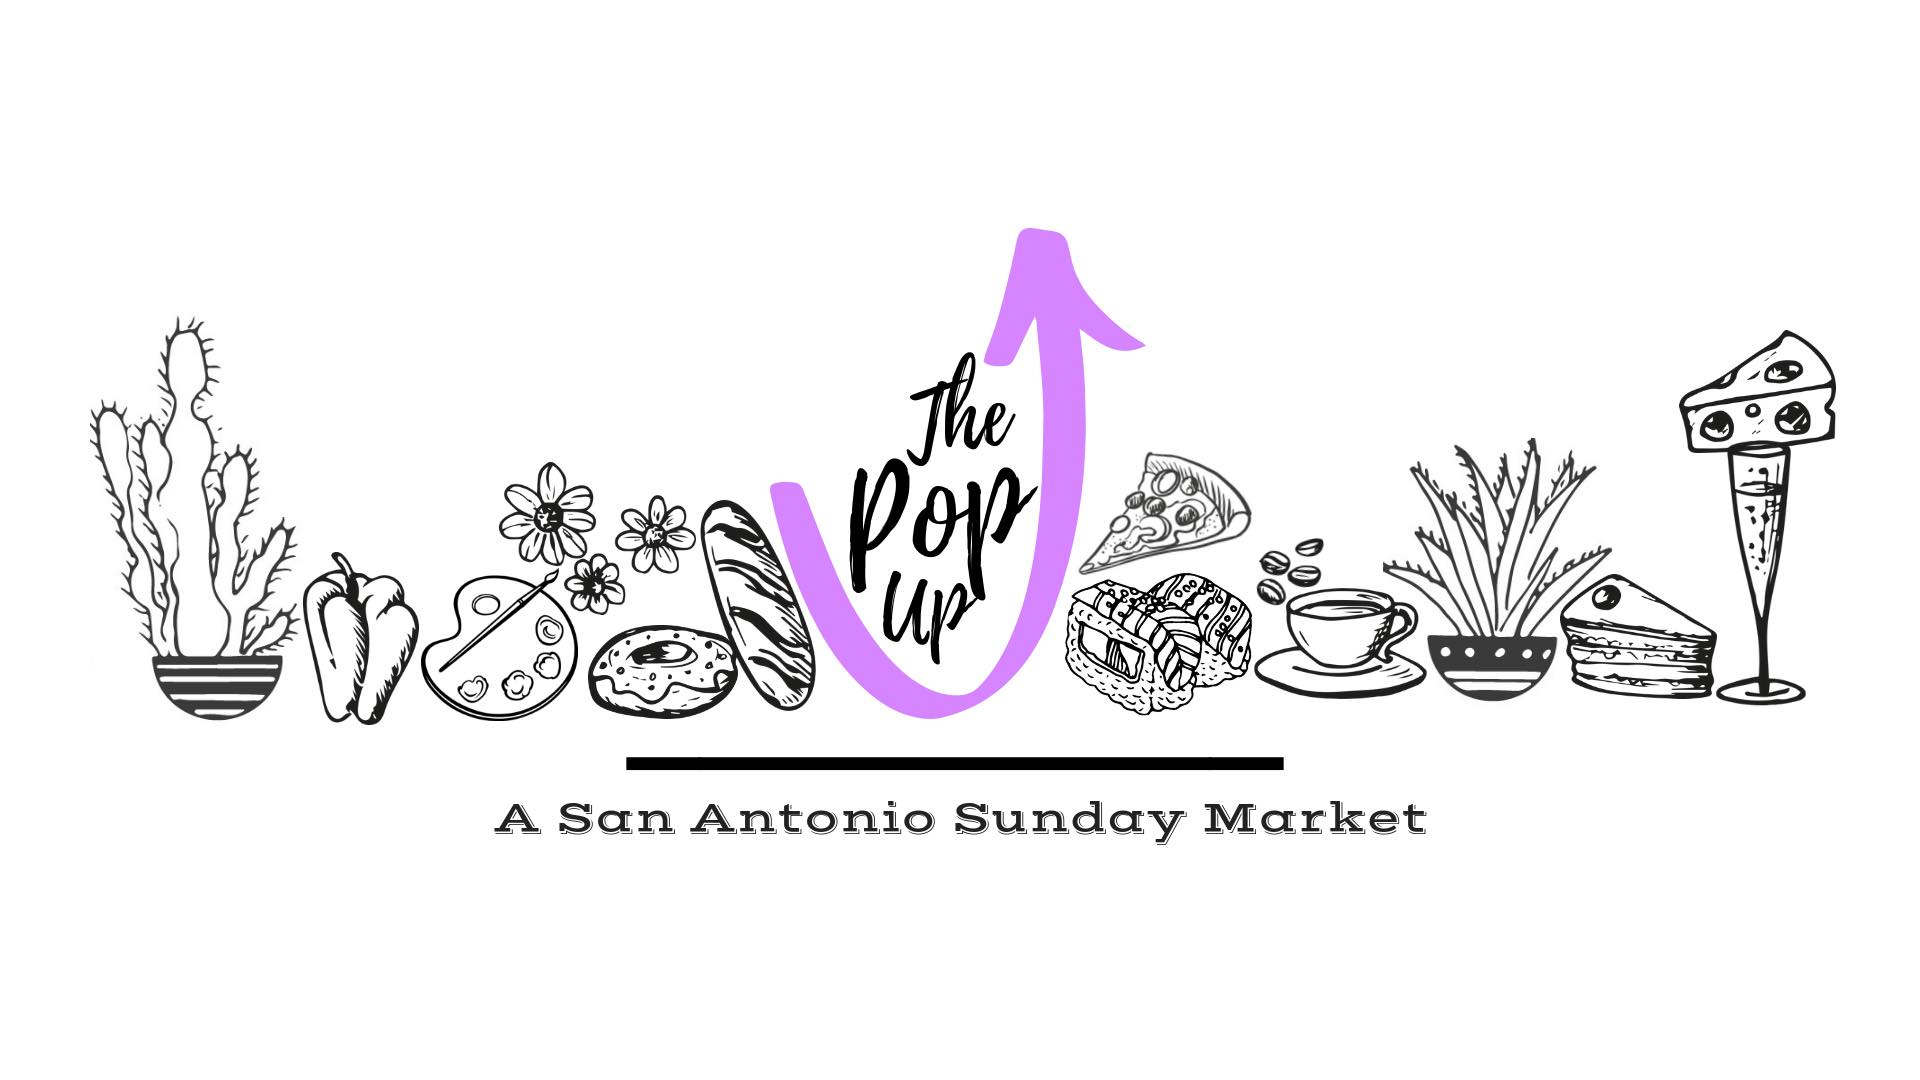 St. Paul Square will have a new, weekly pop-up market on Sundays this fall